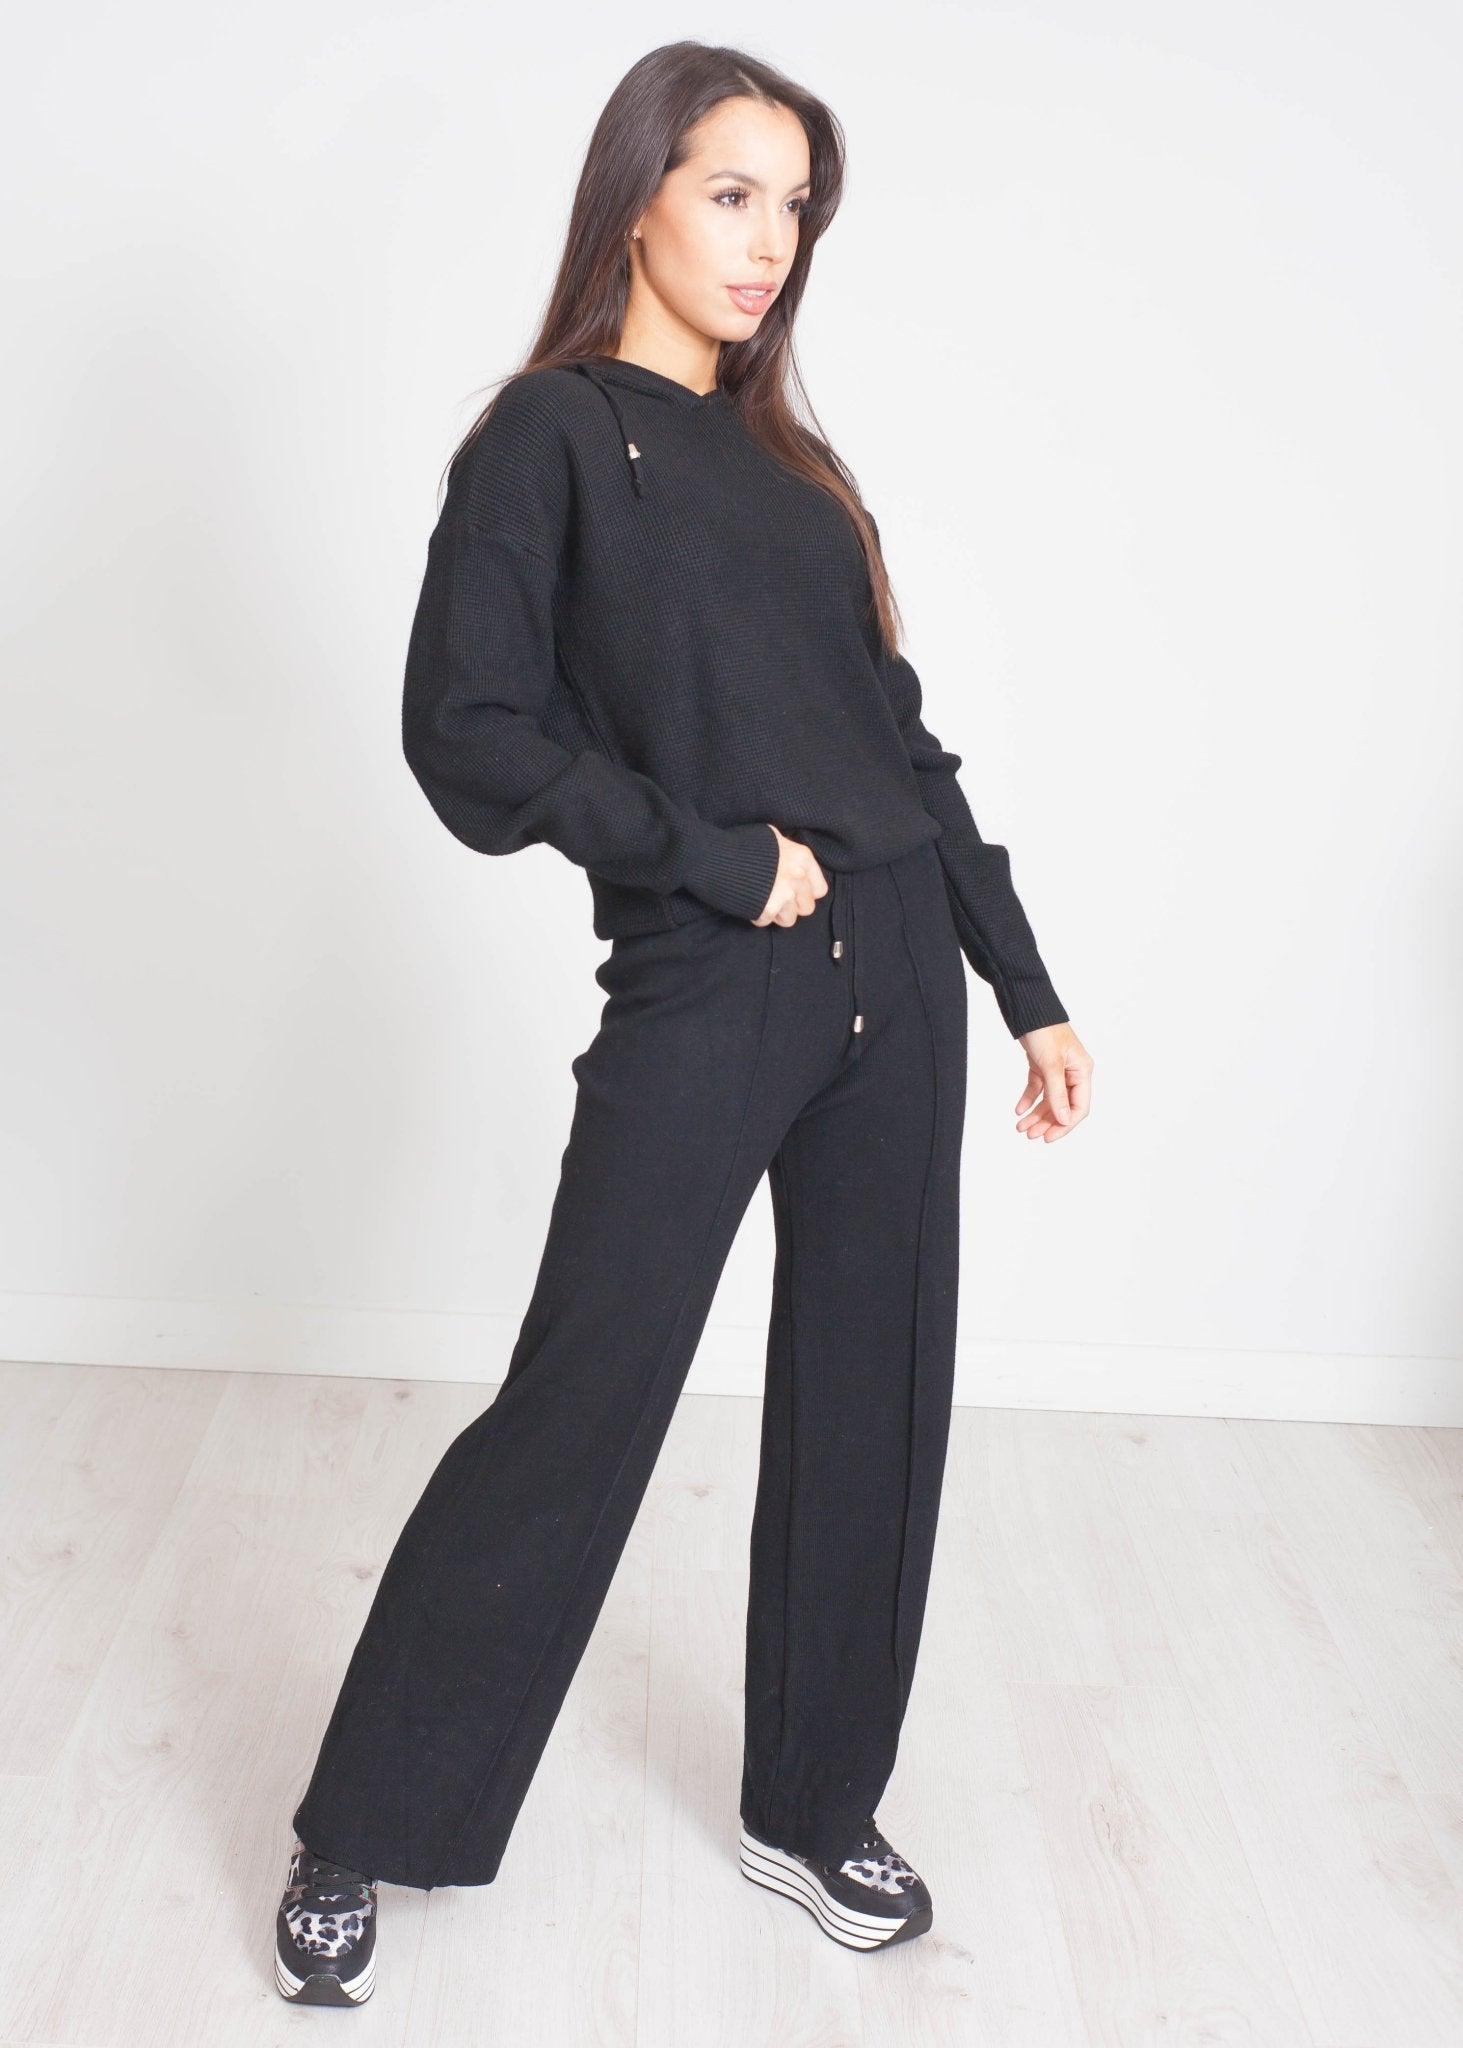 Samantha Knit Lounge Set In Black - The Walk in Wardrobe